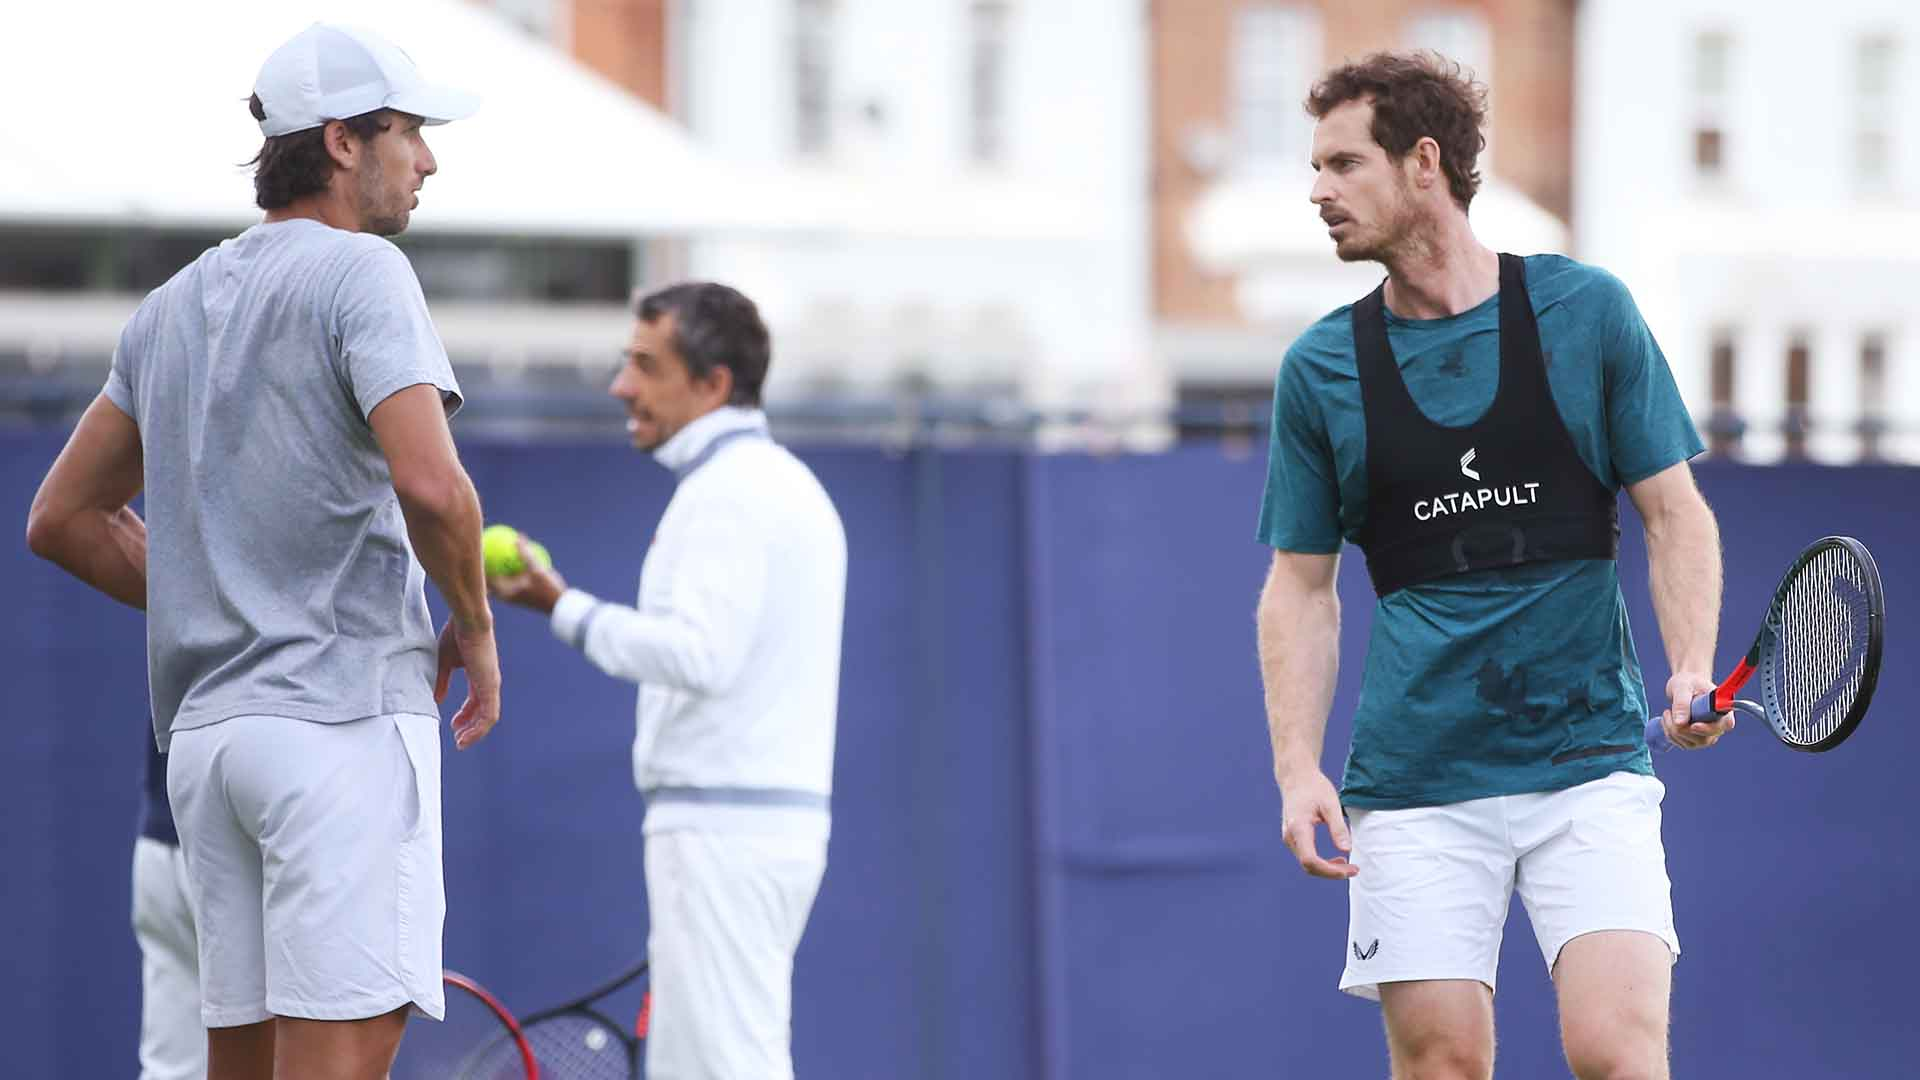 <a href='https://www.atptour.com/en/players/feliciano-lopez/l397/overview'>Feliciano Lopez</a> and <a href='https://www.atptour.com/en/players/andy-murray/mc10/overview'>Andy Murray</a> practise at the Queen's Club ahead of the Fever-Tree Championships.